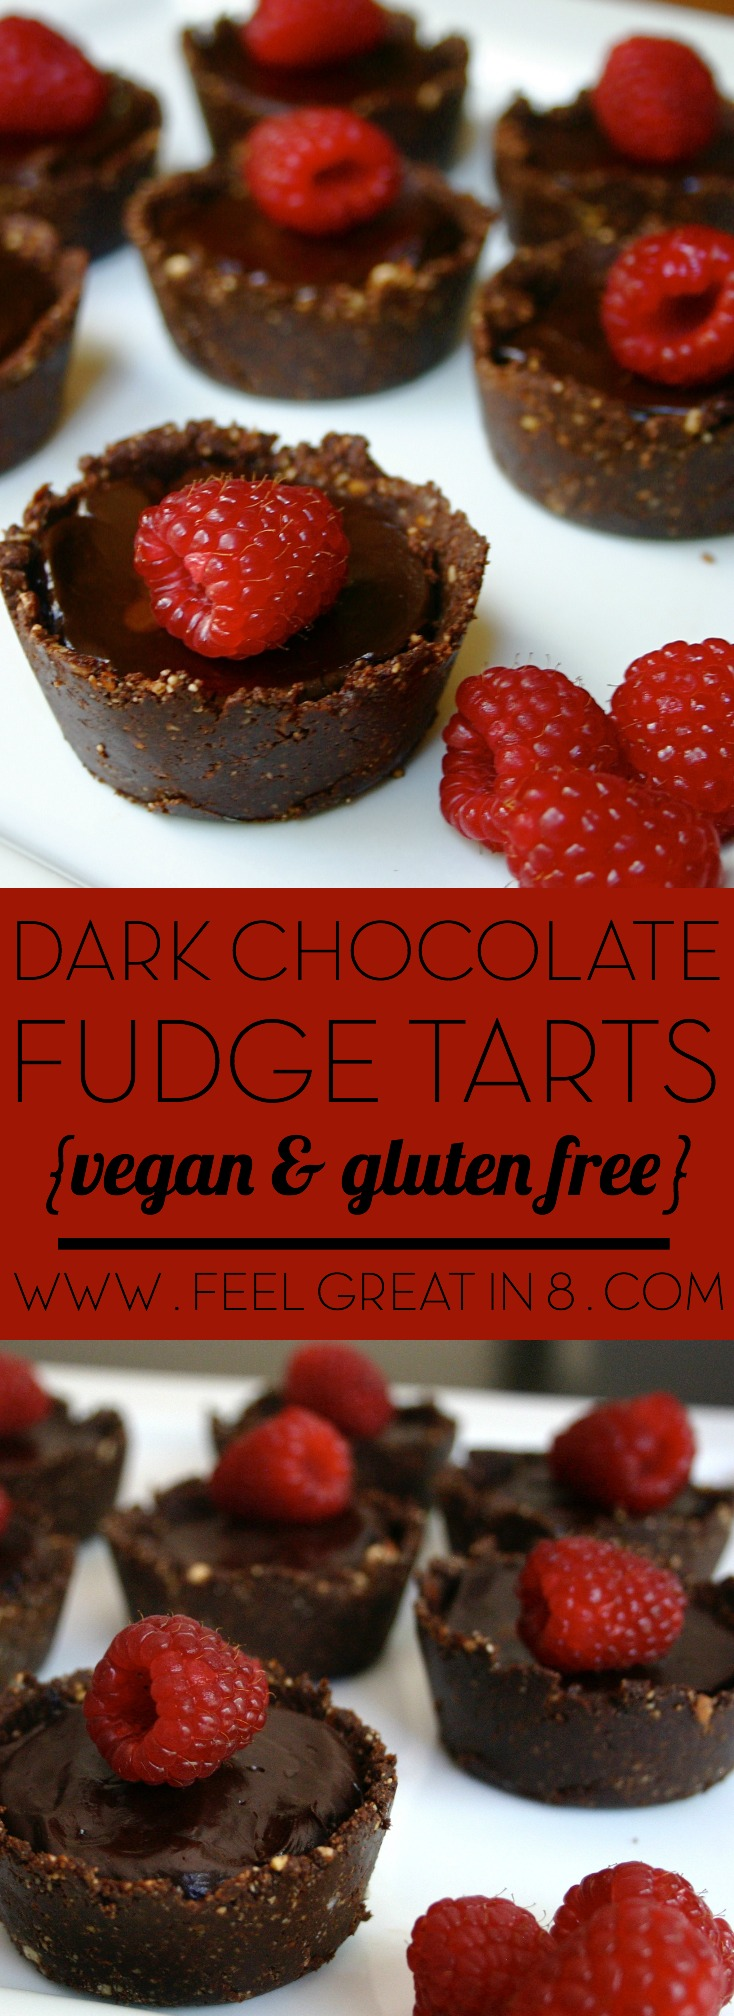 You'll never believe that these incredibly delicious Dark Chocolate Fudge Tarts are refined sugar free, gluten free, and no bake! | Feel Great in 8